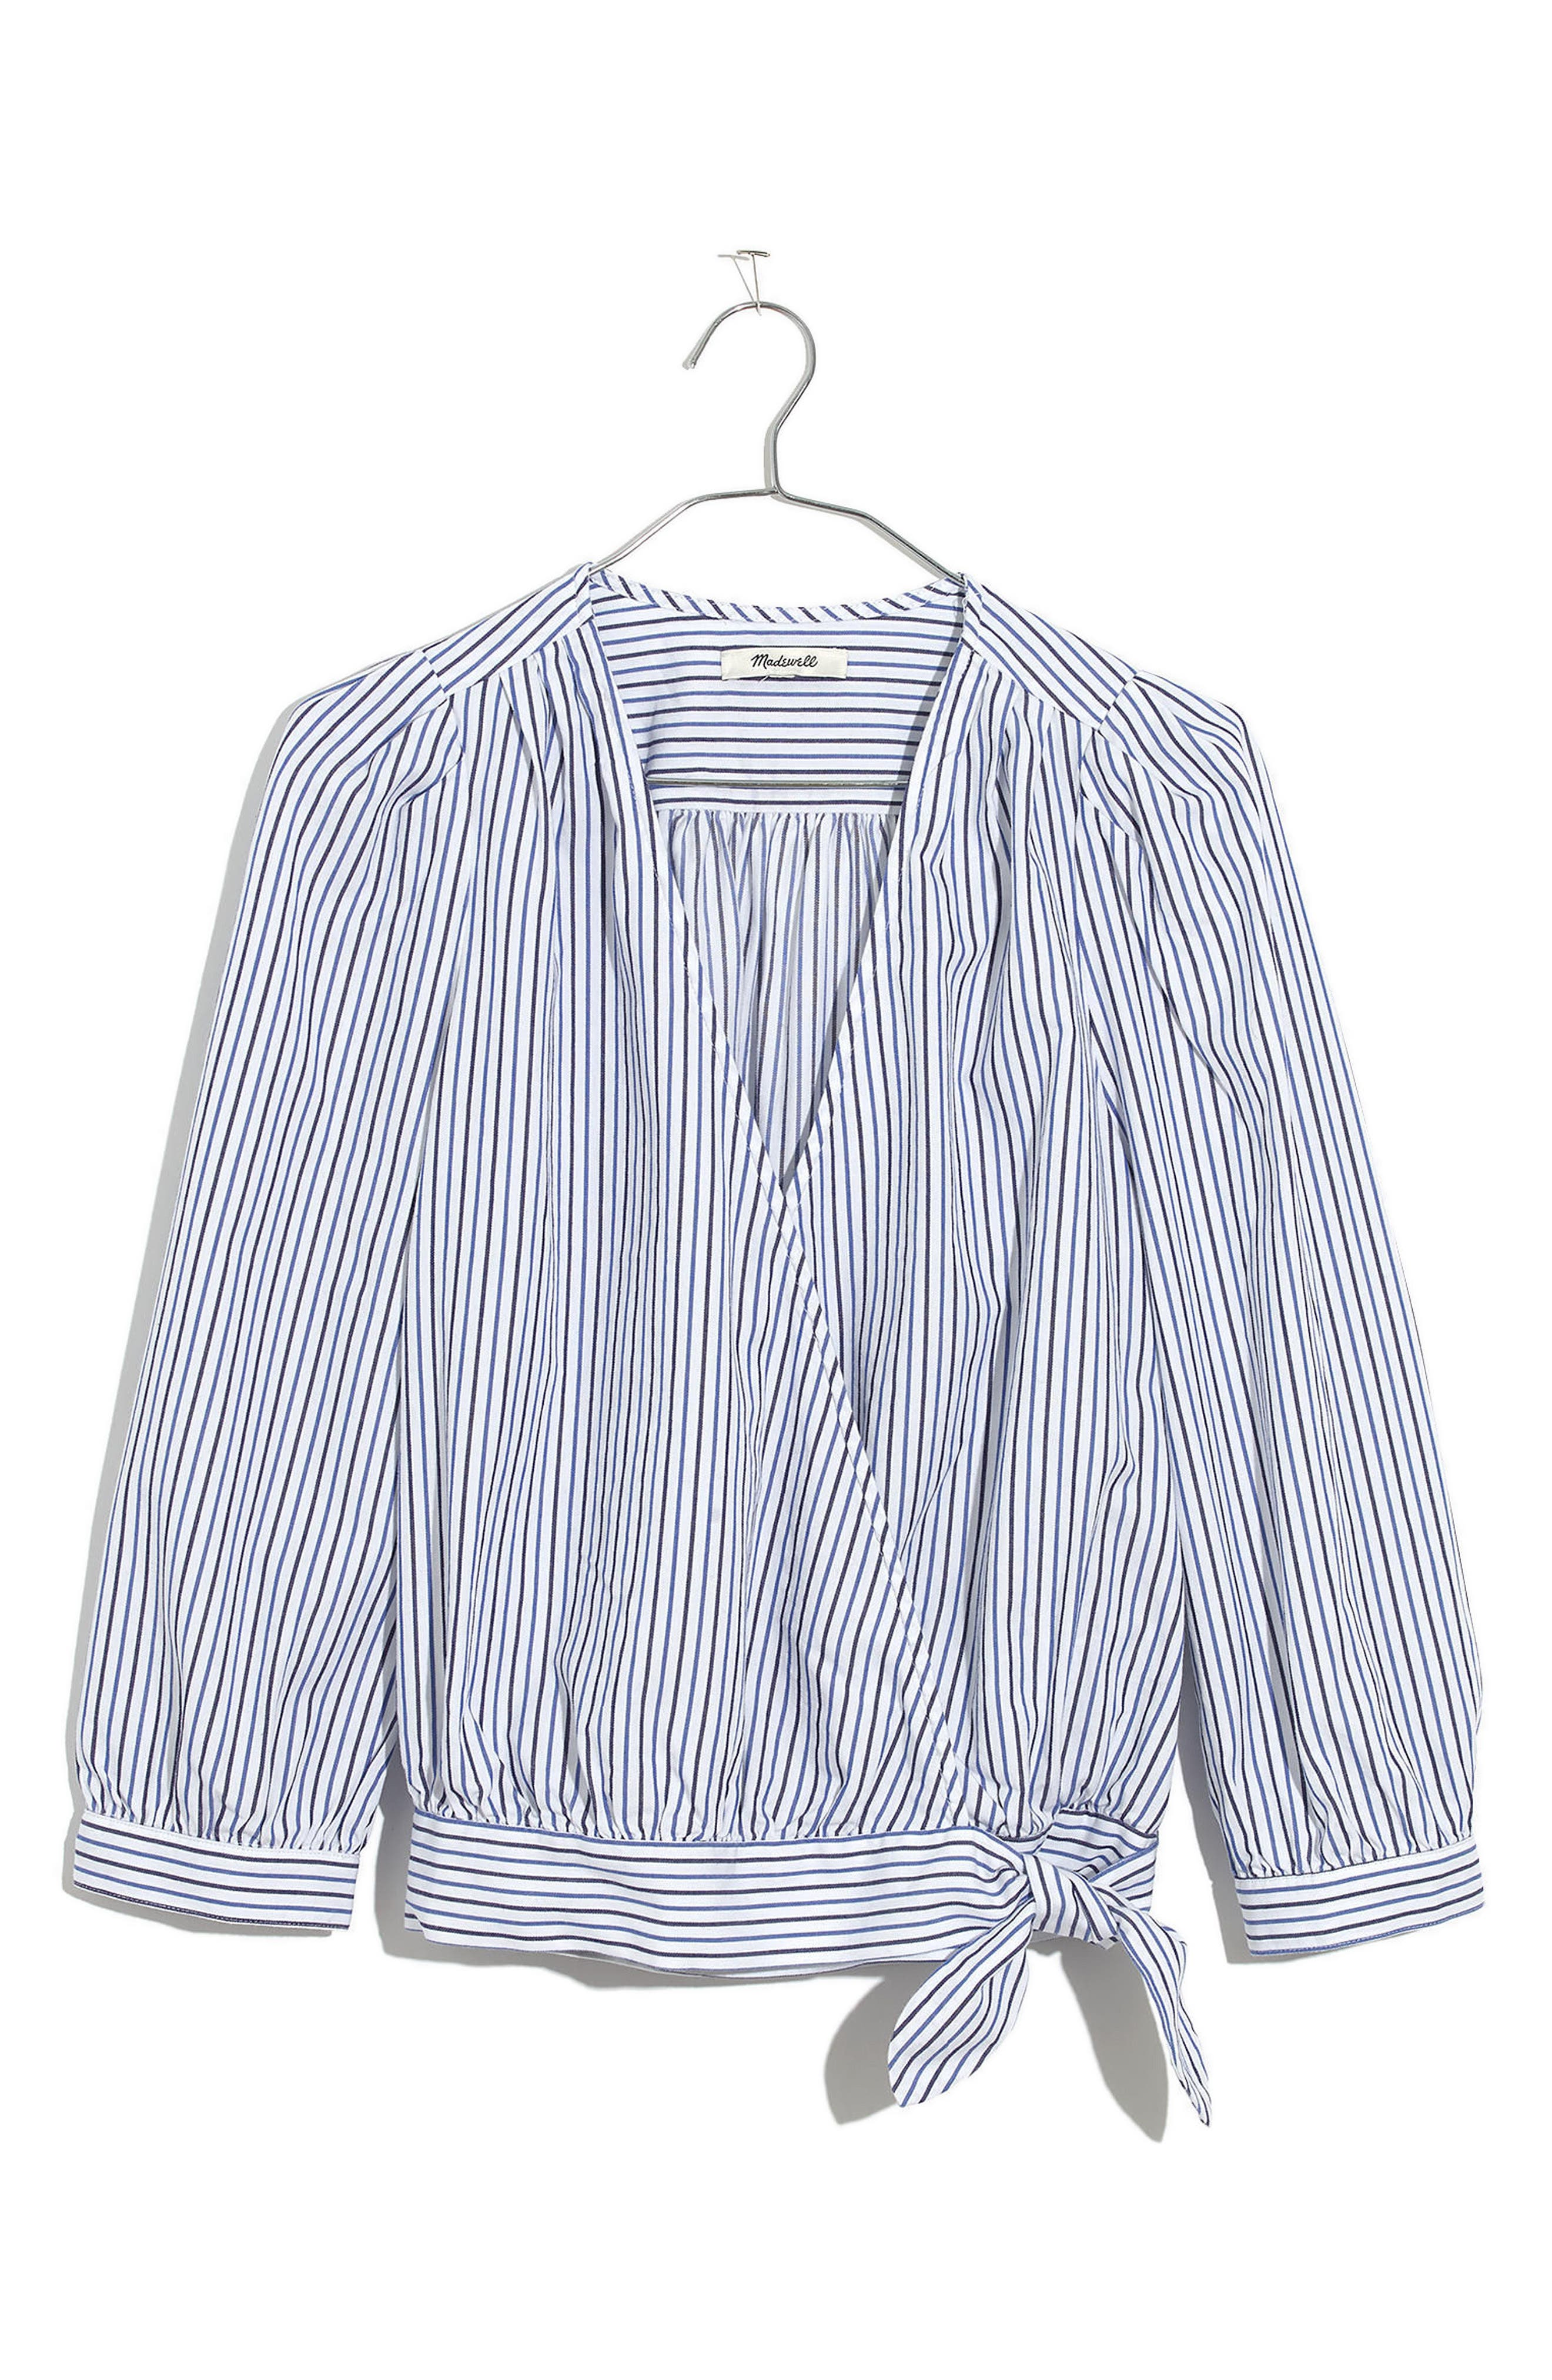 Albury Stripe Wrap Top,                             Alternate thumbnail 3, color,                             400